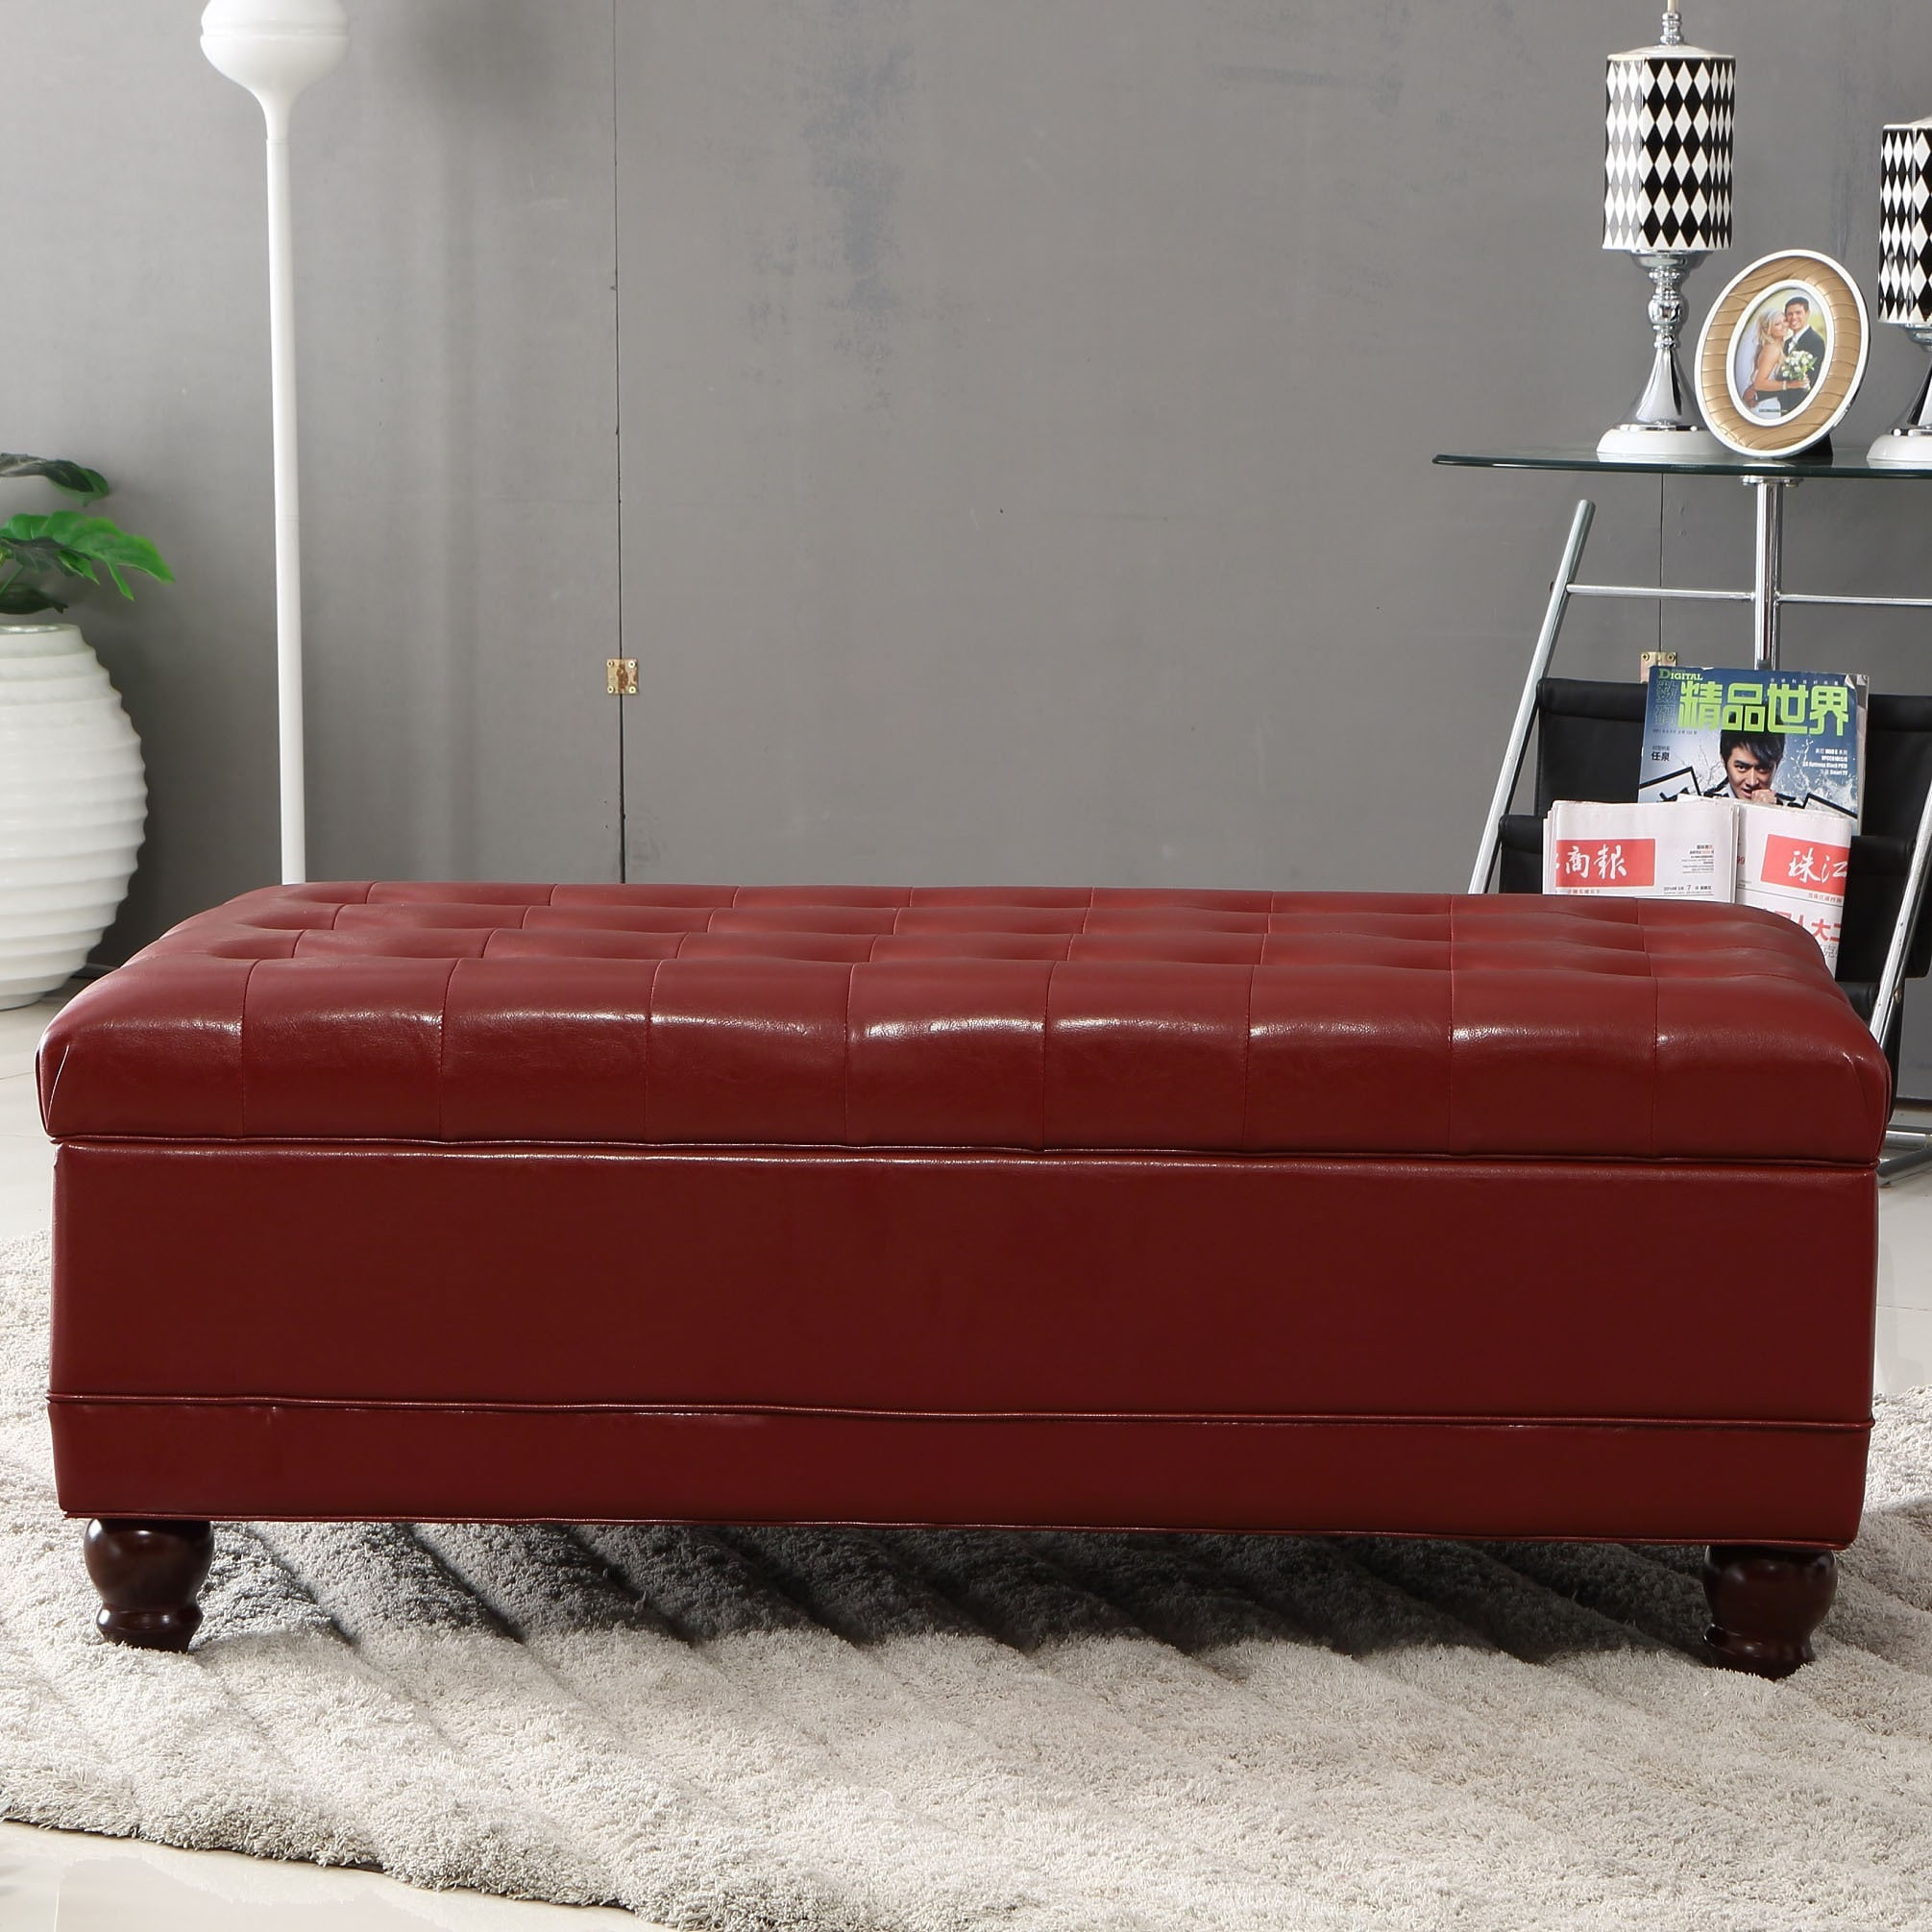 a drawers and upholstered sitting sol benches bench cushion nott red with storage camino interiors del